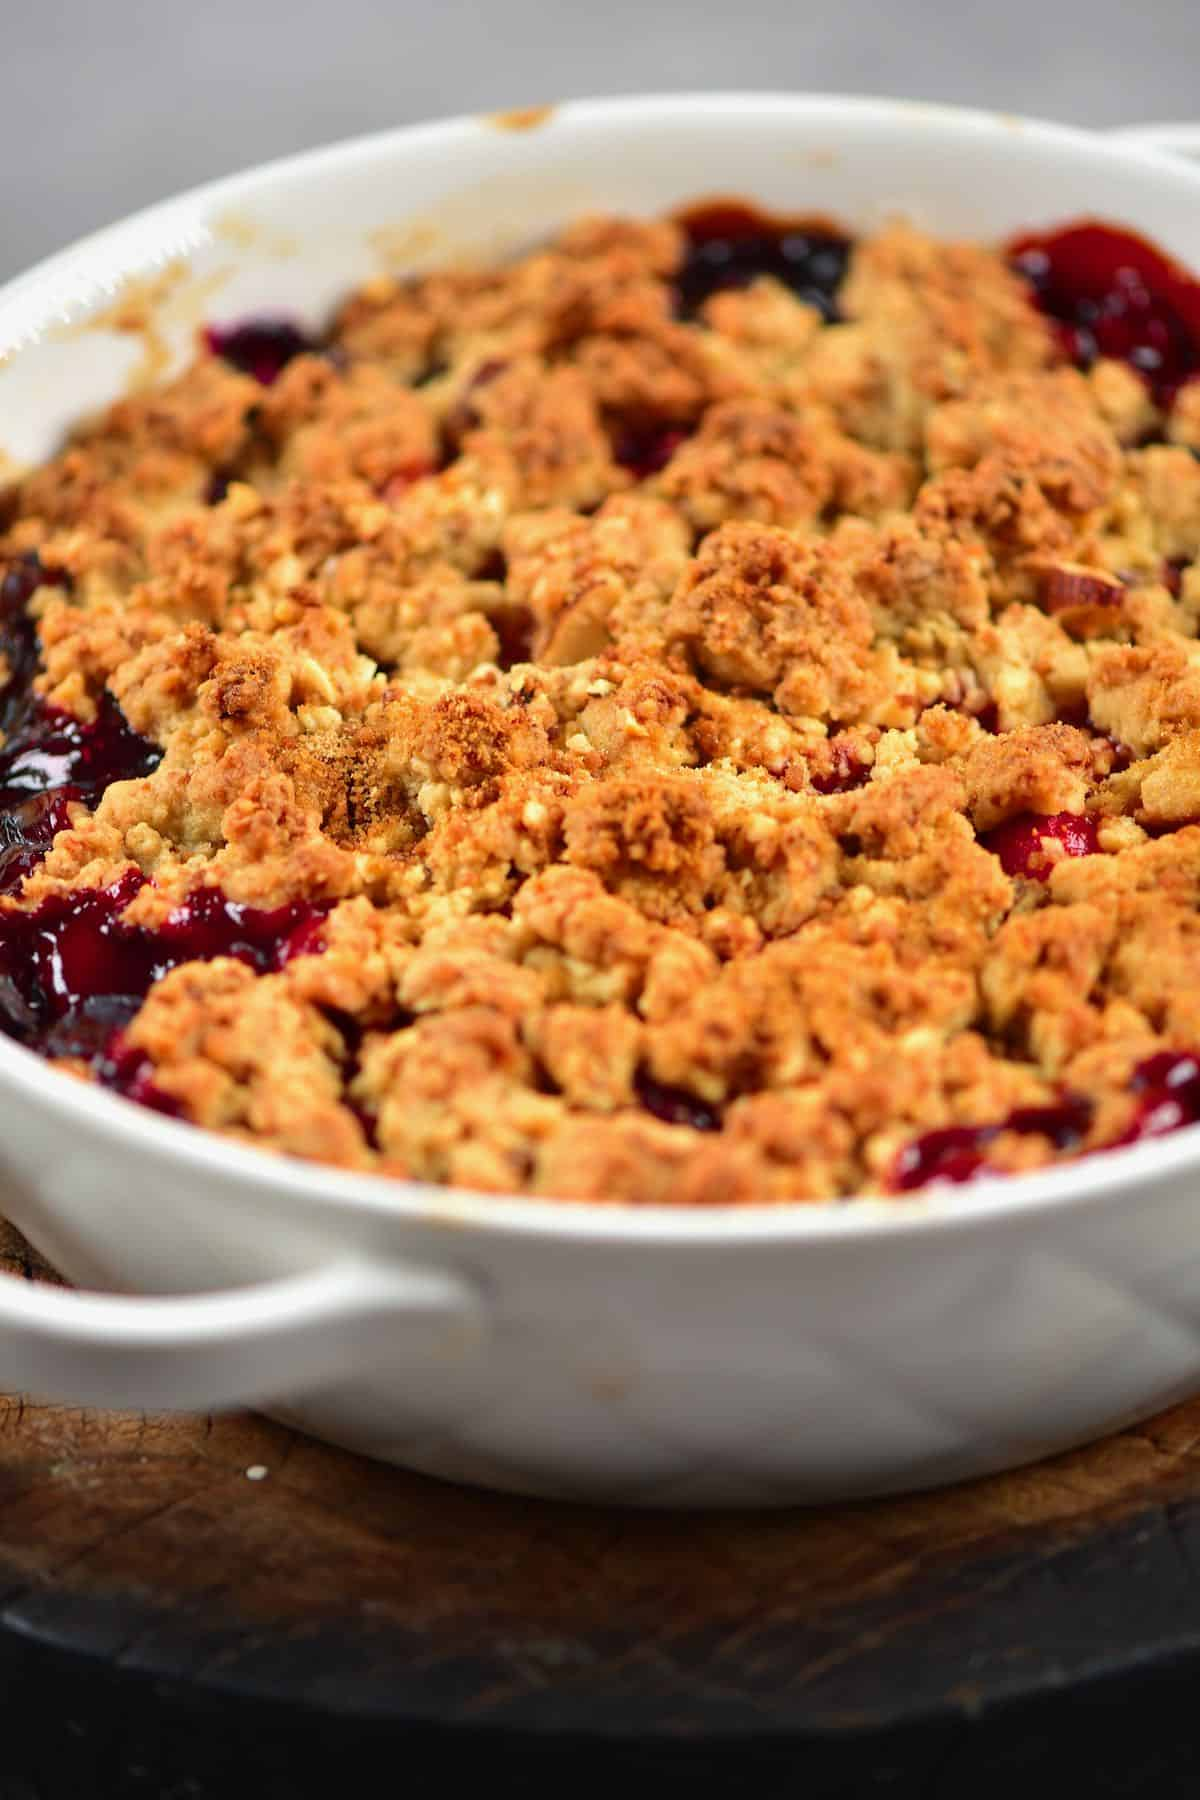 Berry crumble in a baking dish